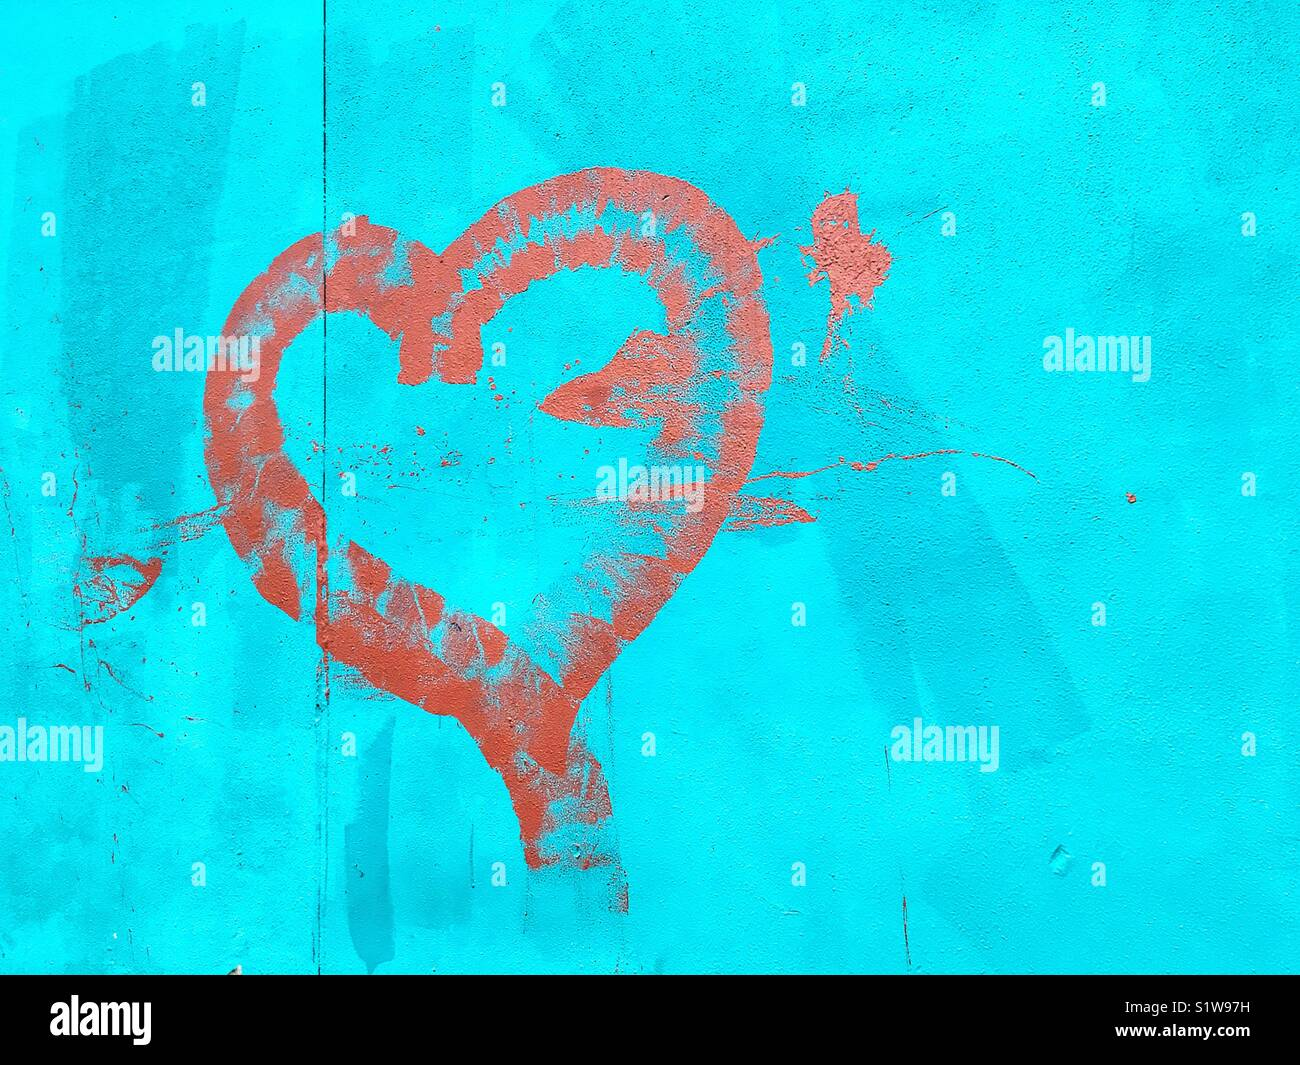 Graffiti depicting a heart painted on a blue wall. - Stock Image